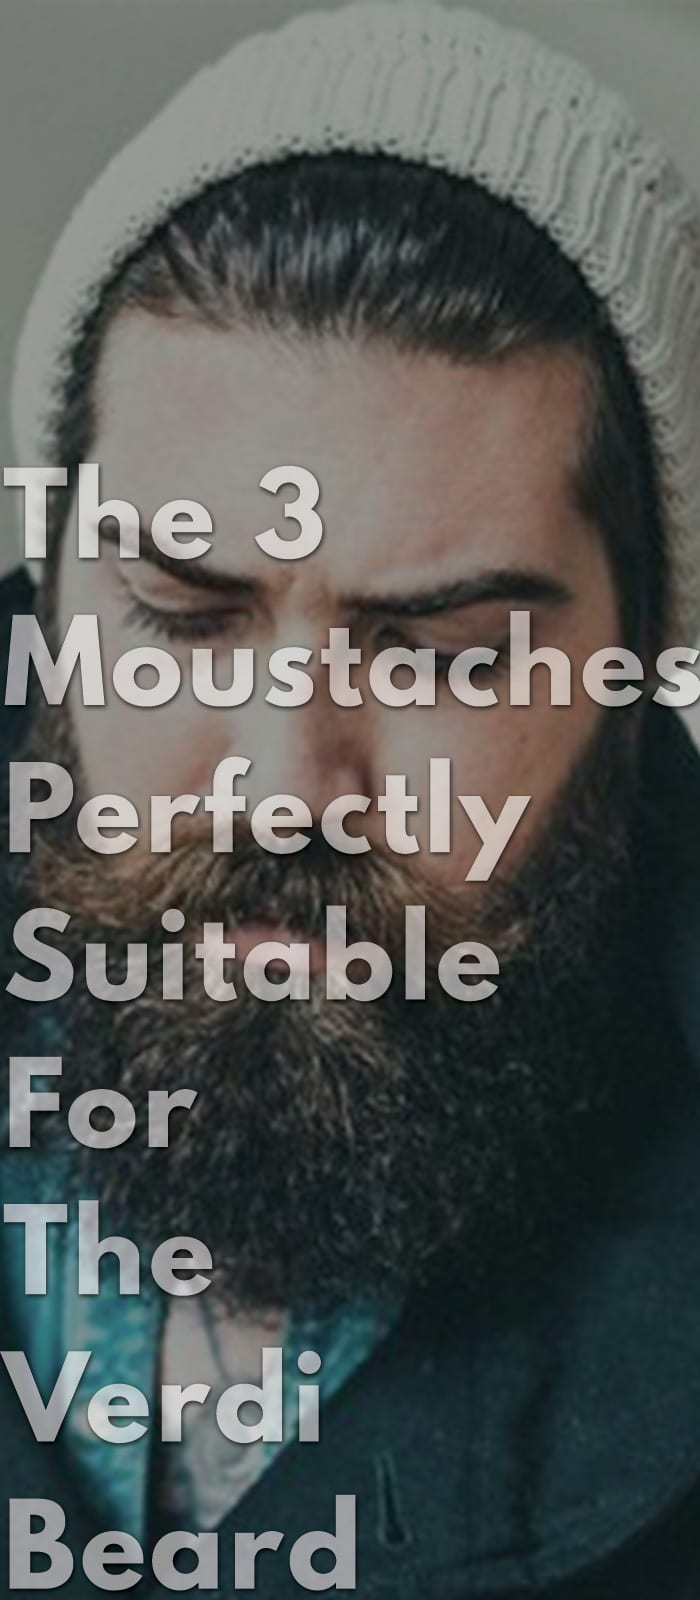 The-3-Moustaches-Perfectly-Suitable-For-The-Verdi-Beard